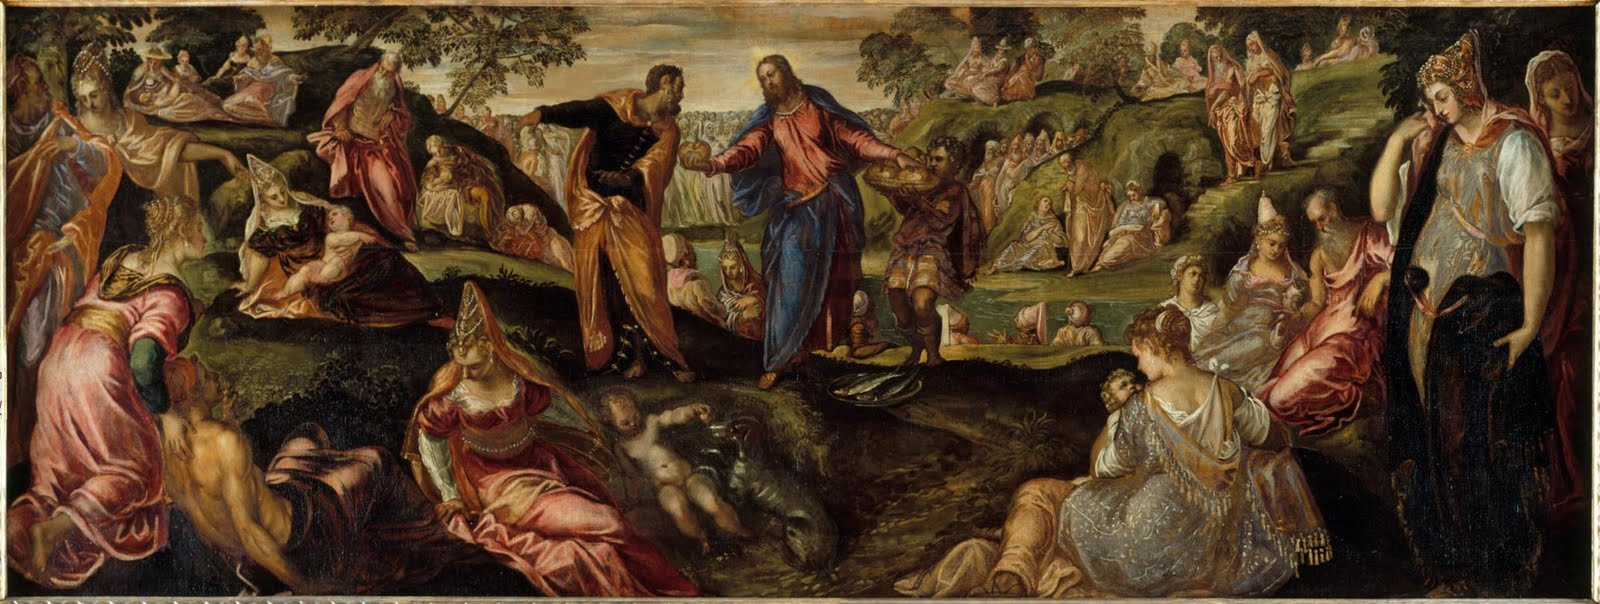 Tintorettos Miracle of the Loaves and Fishes c 154550